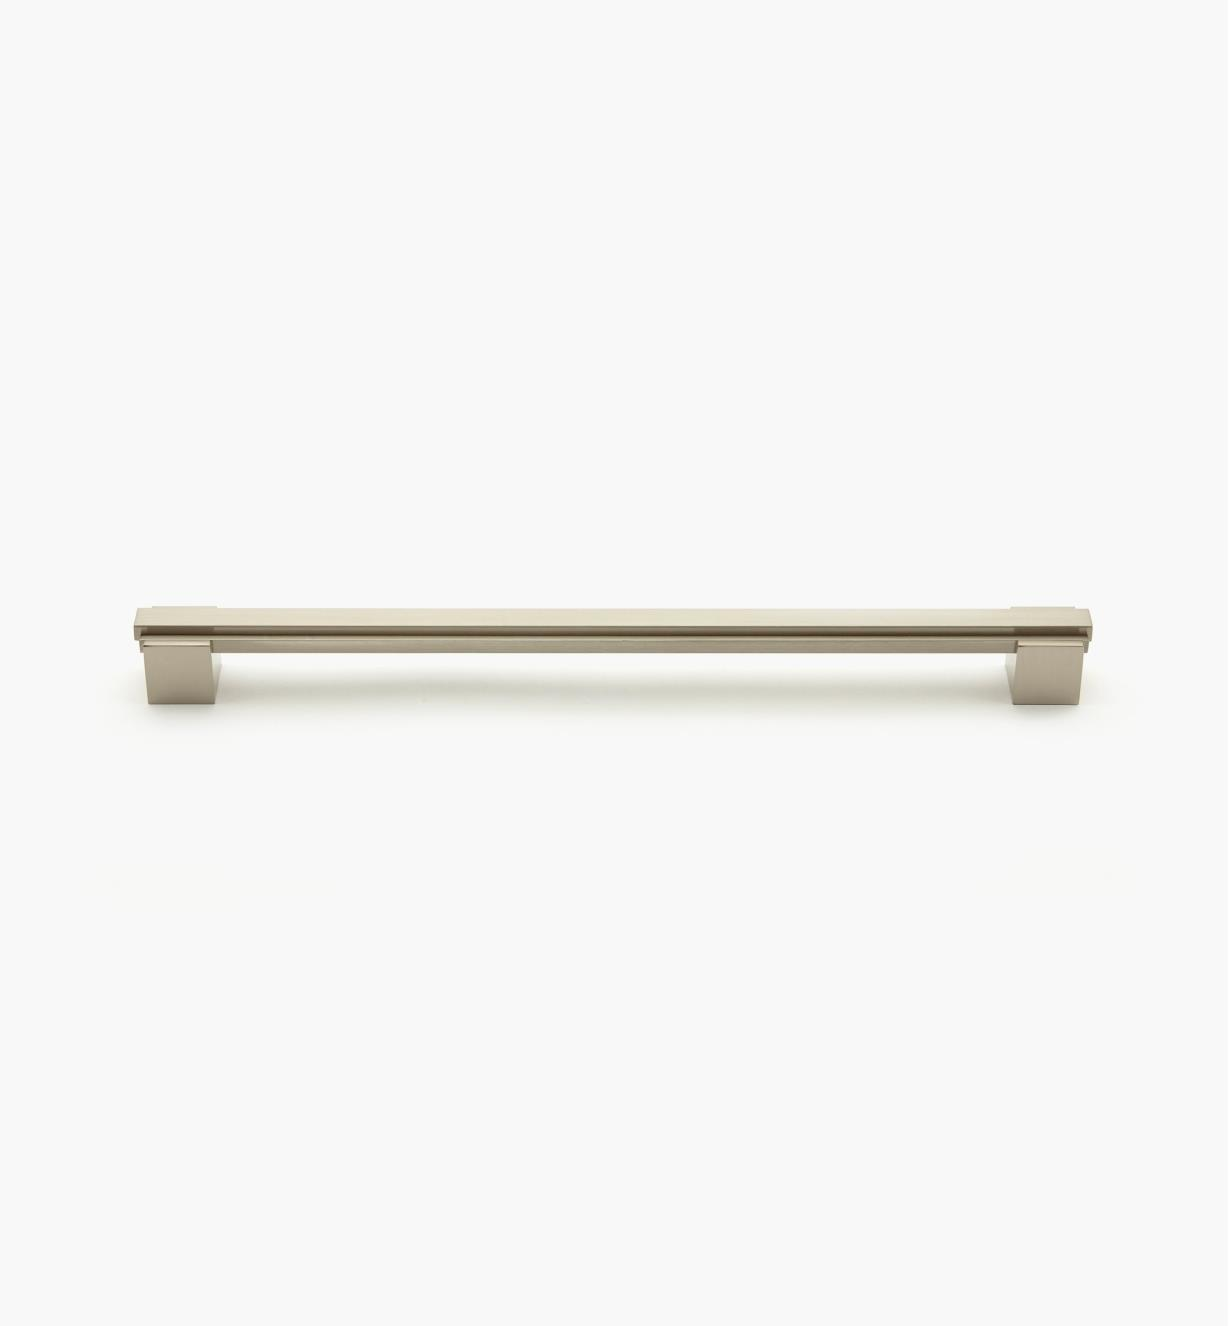 02W1364 - Chicago 320mm Satin Nickel Handle